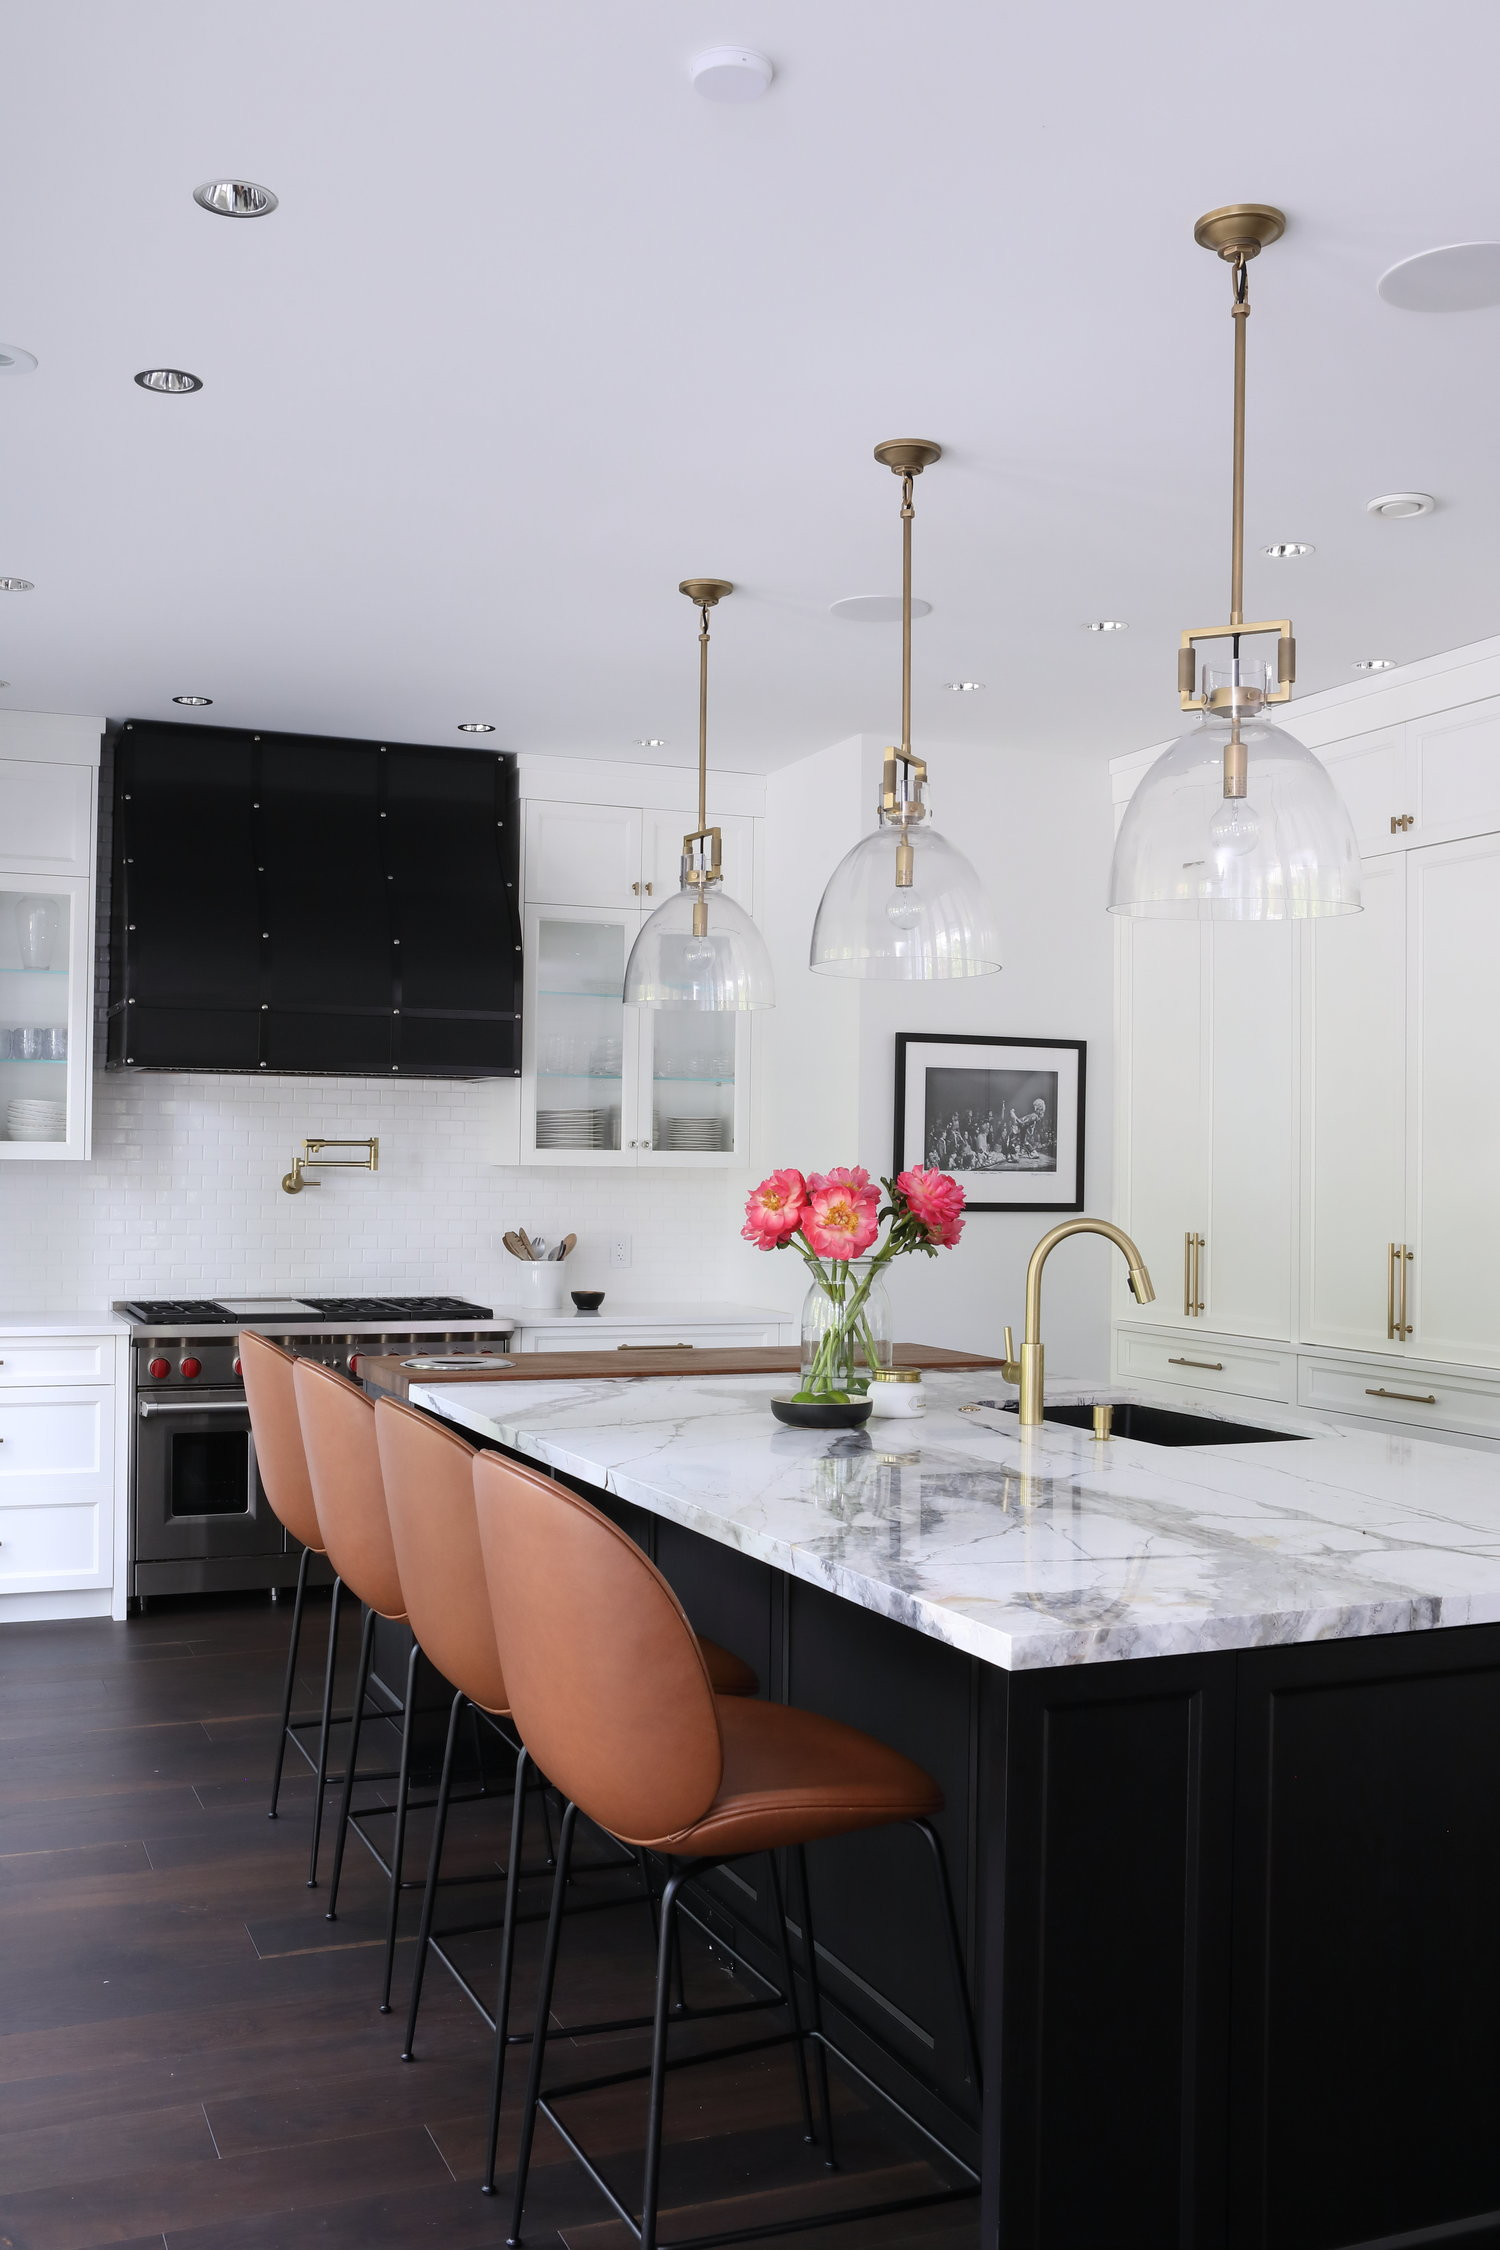 White Kitchens With Dark Islands Pictures and Ideas   Hunker